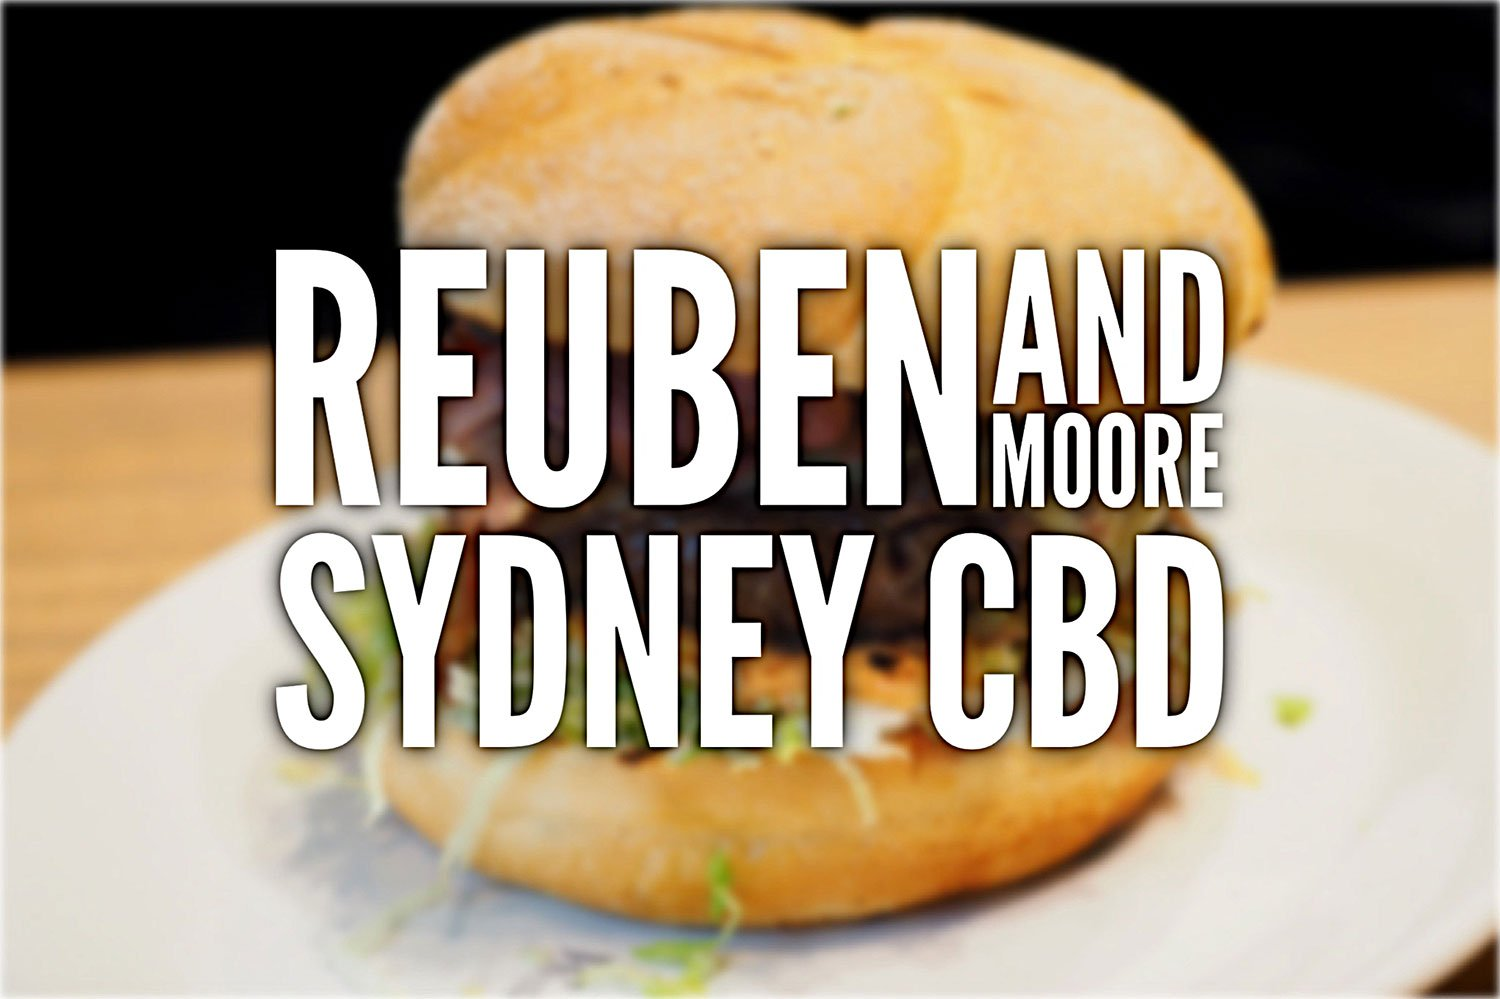 Sydney Food Blog Review of Reuben and Moore, Sydney CBD